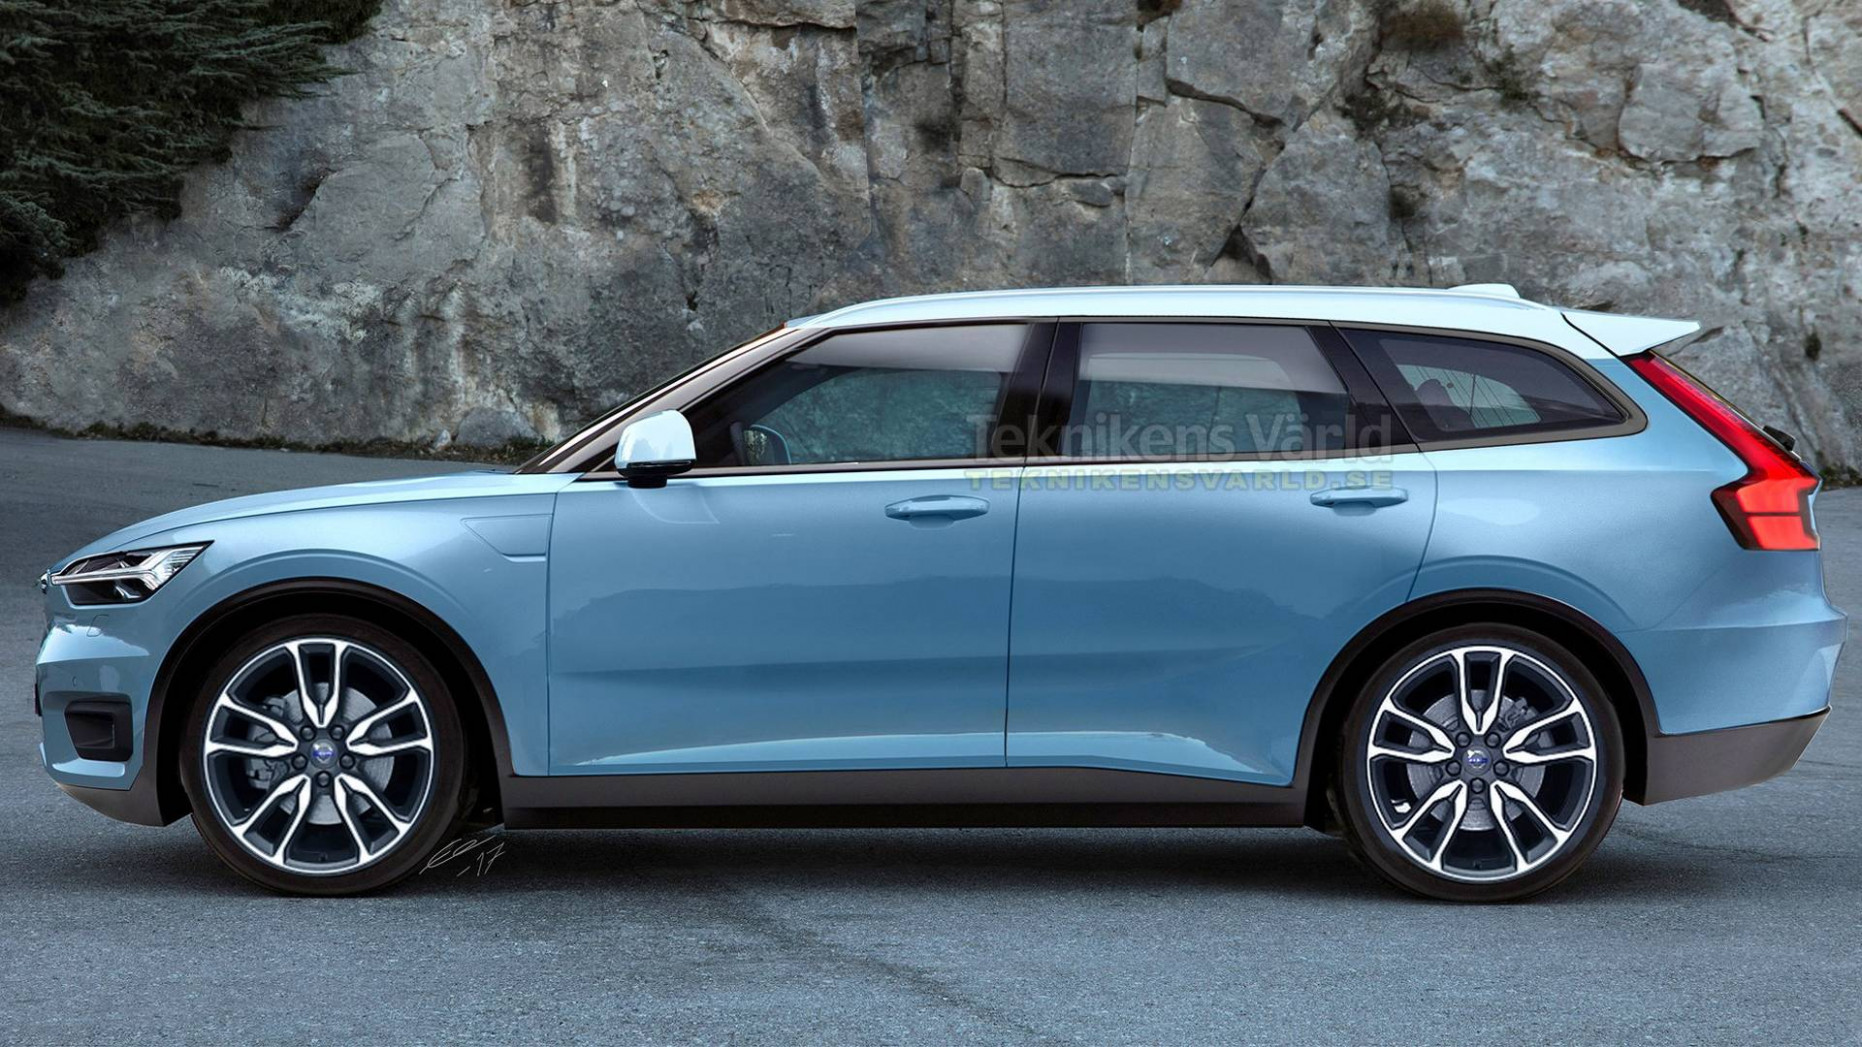 Volvo V9 Render Will Make You Fall In Love With Wagons Instantly - volvo new s40 2020